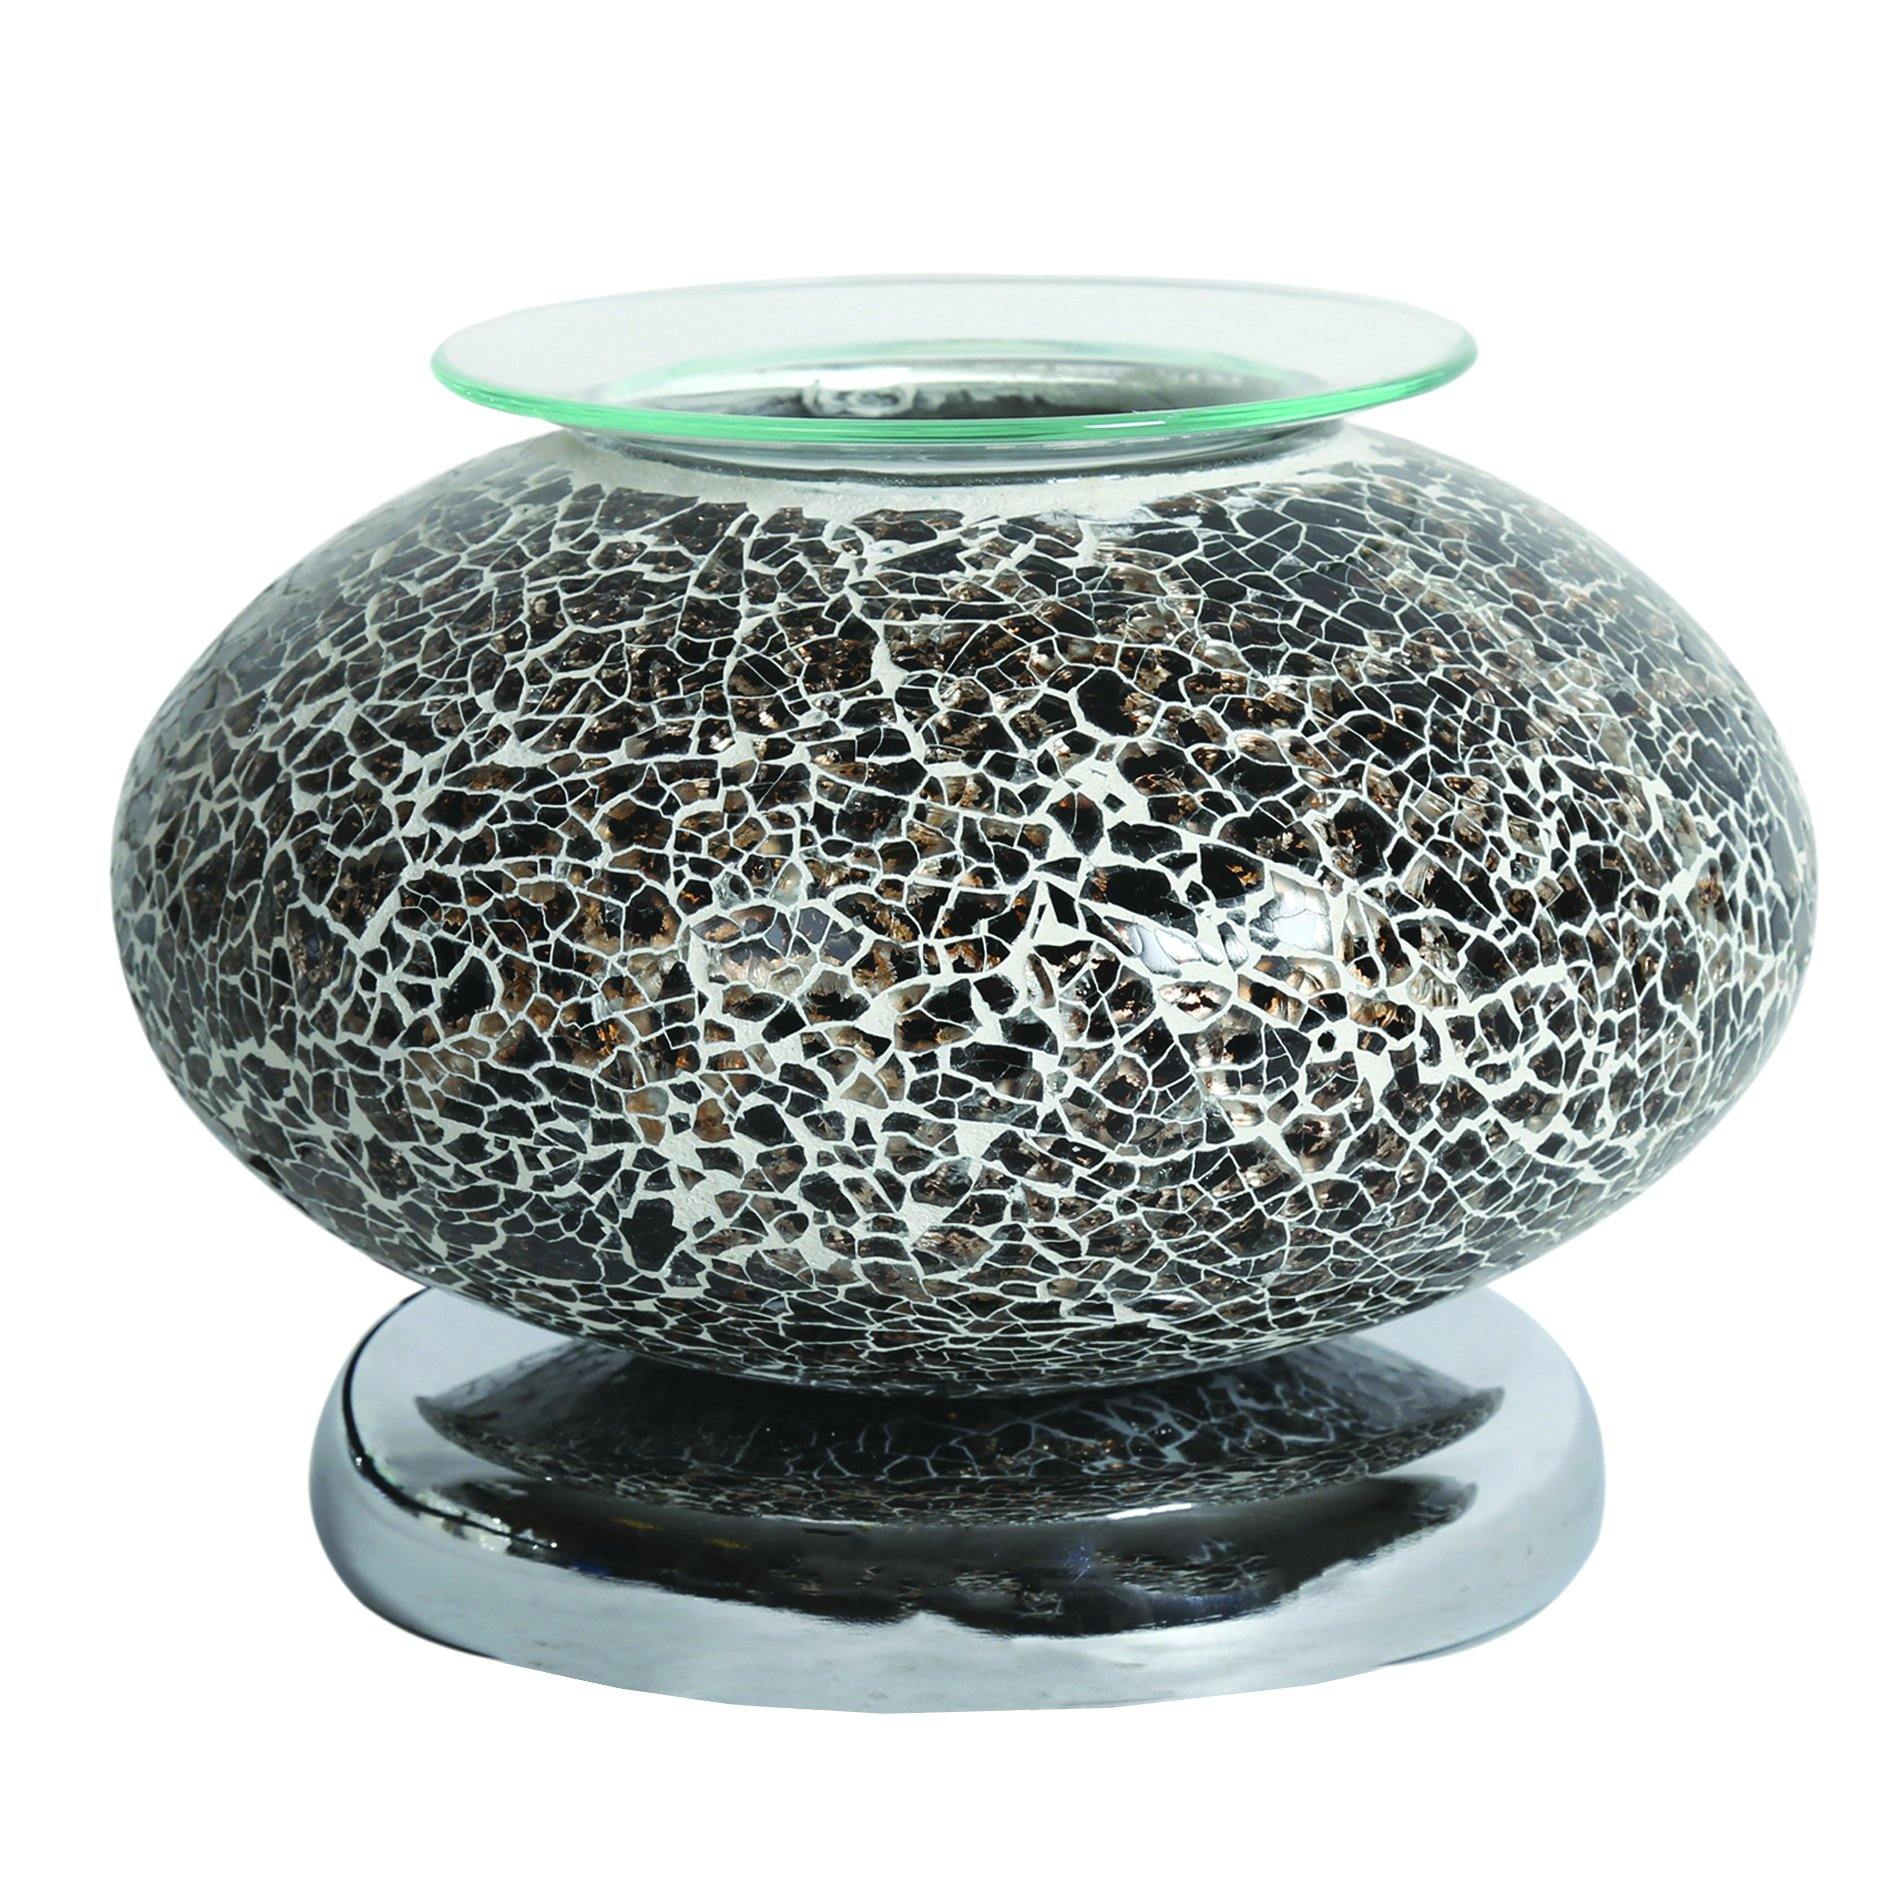 Aroma Accessories Electric Wax Melt Burner Touch - Black Mosaic Ellipse - TOSYS Candles and Gifts